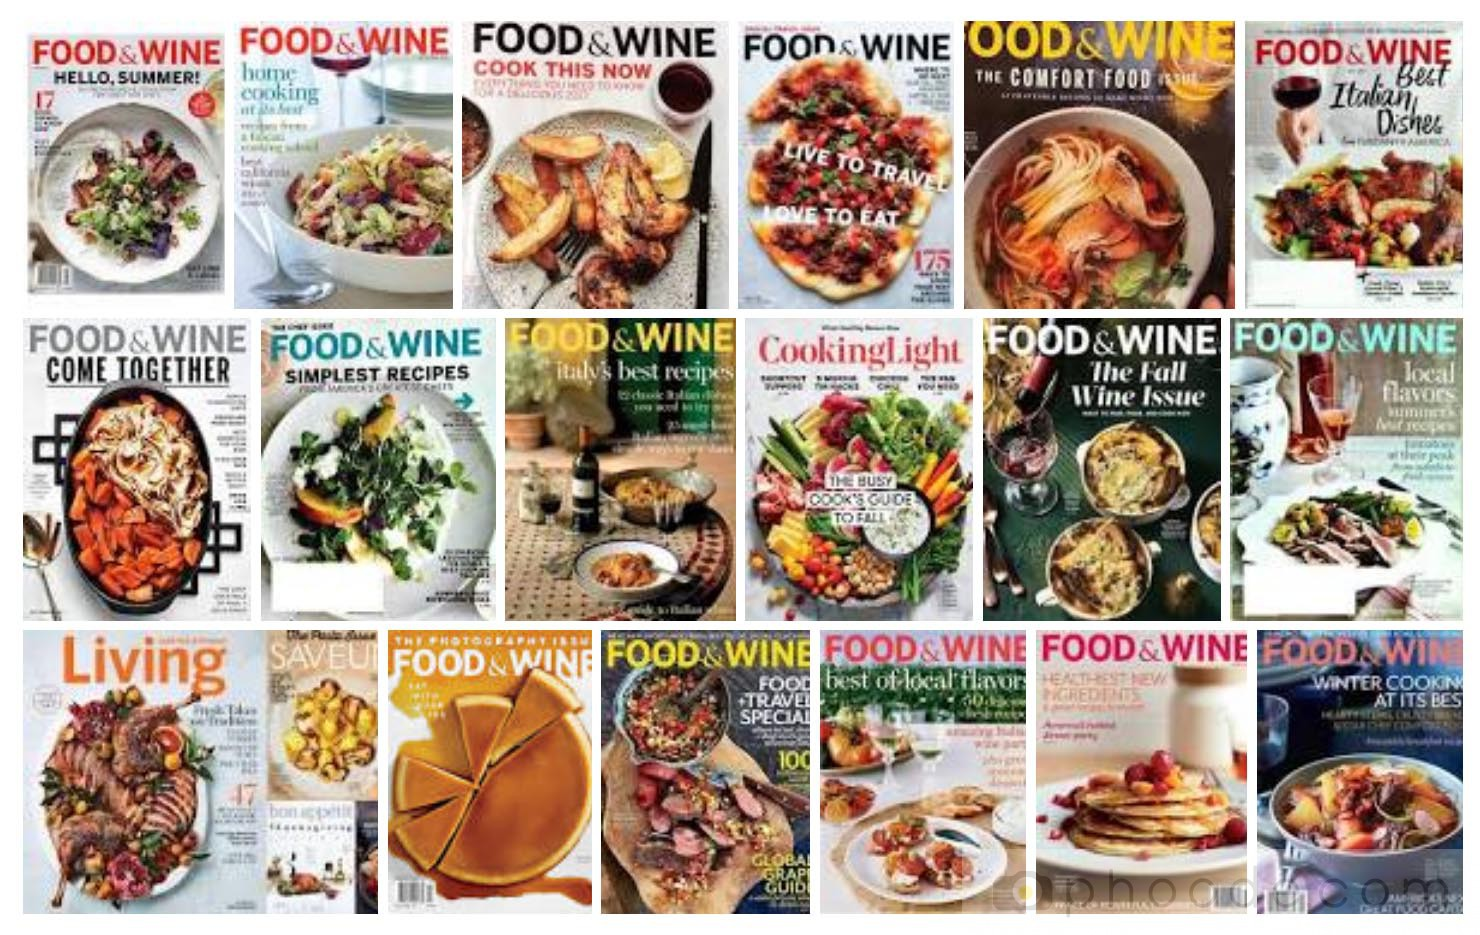 food magazine photoeditor cover; food photography jobs; food photography career; art food magazine cover; international platform for food photographers; international online association of food photographers; food photography news; food photography awards; trends in food photography; contest food photography; website for people who want to become serious food photographers; we are reviewing food photography portfolios; curating the best food photography; food photography educators/mentors; creative director for food photography, culinary creative director, food and wine magazine cover